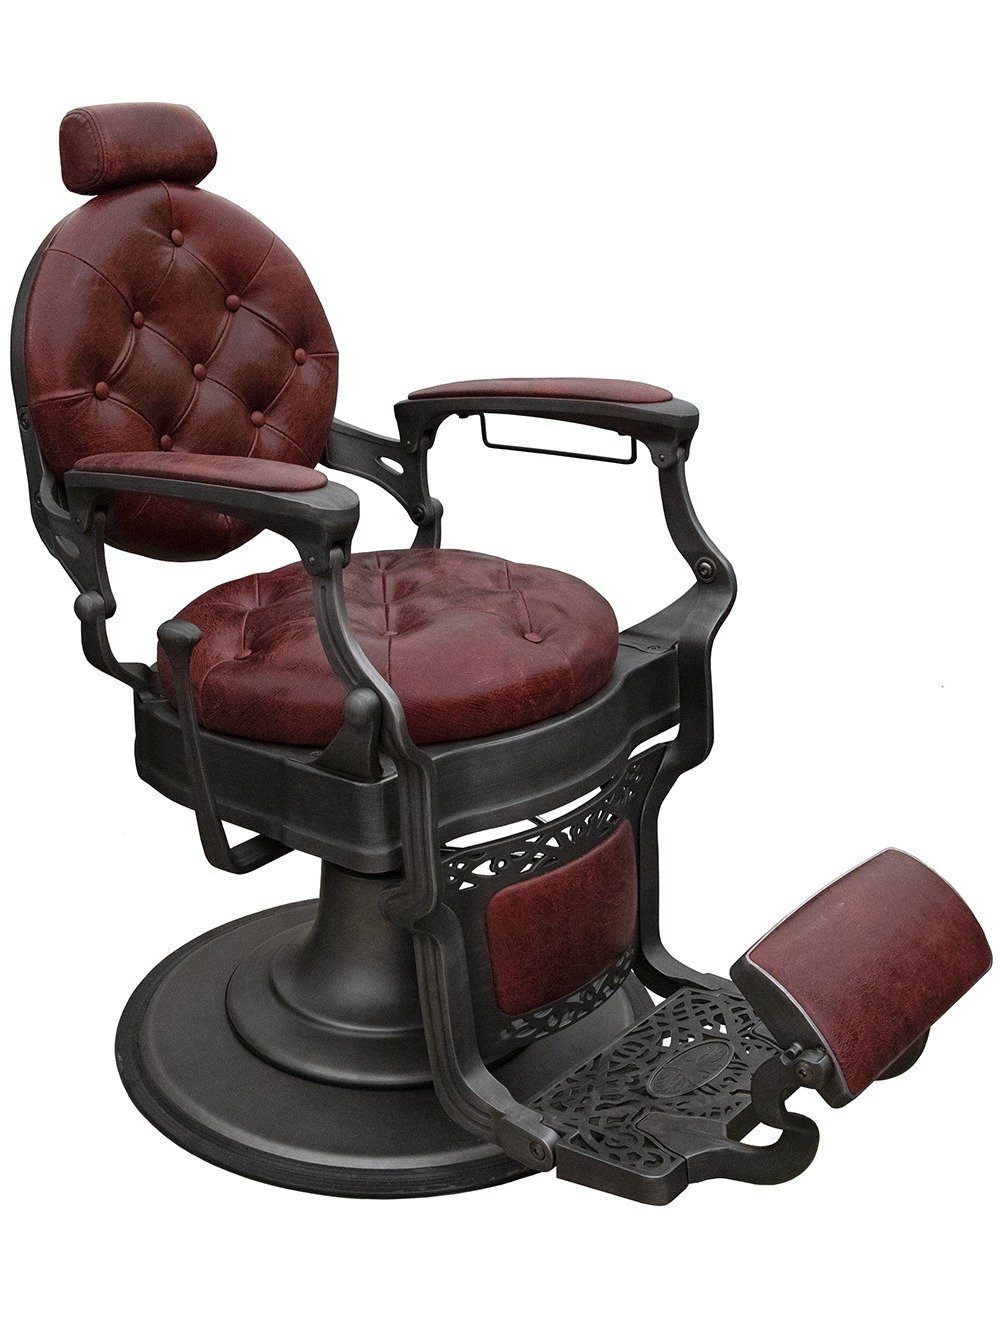 Retro Barber Chair from a 45 degree angle